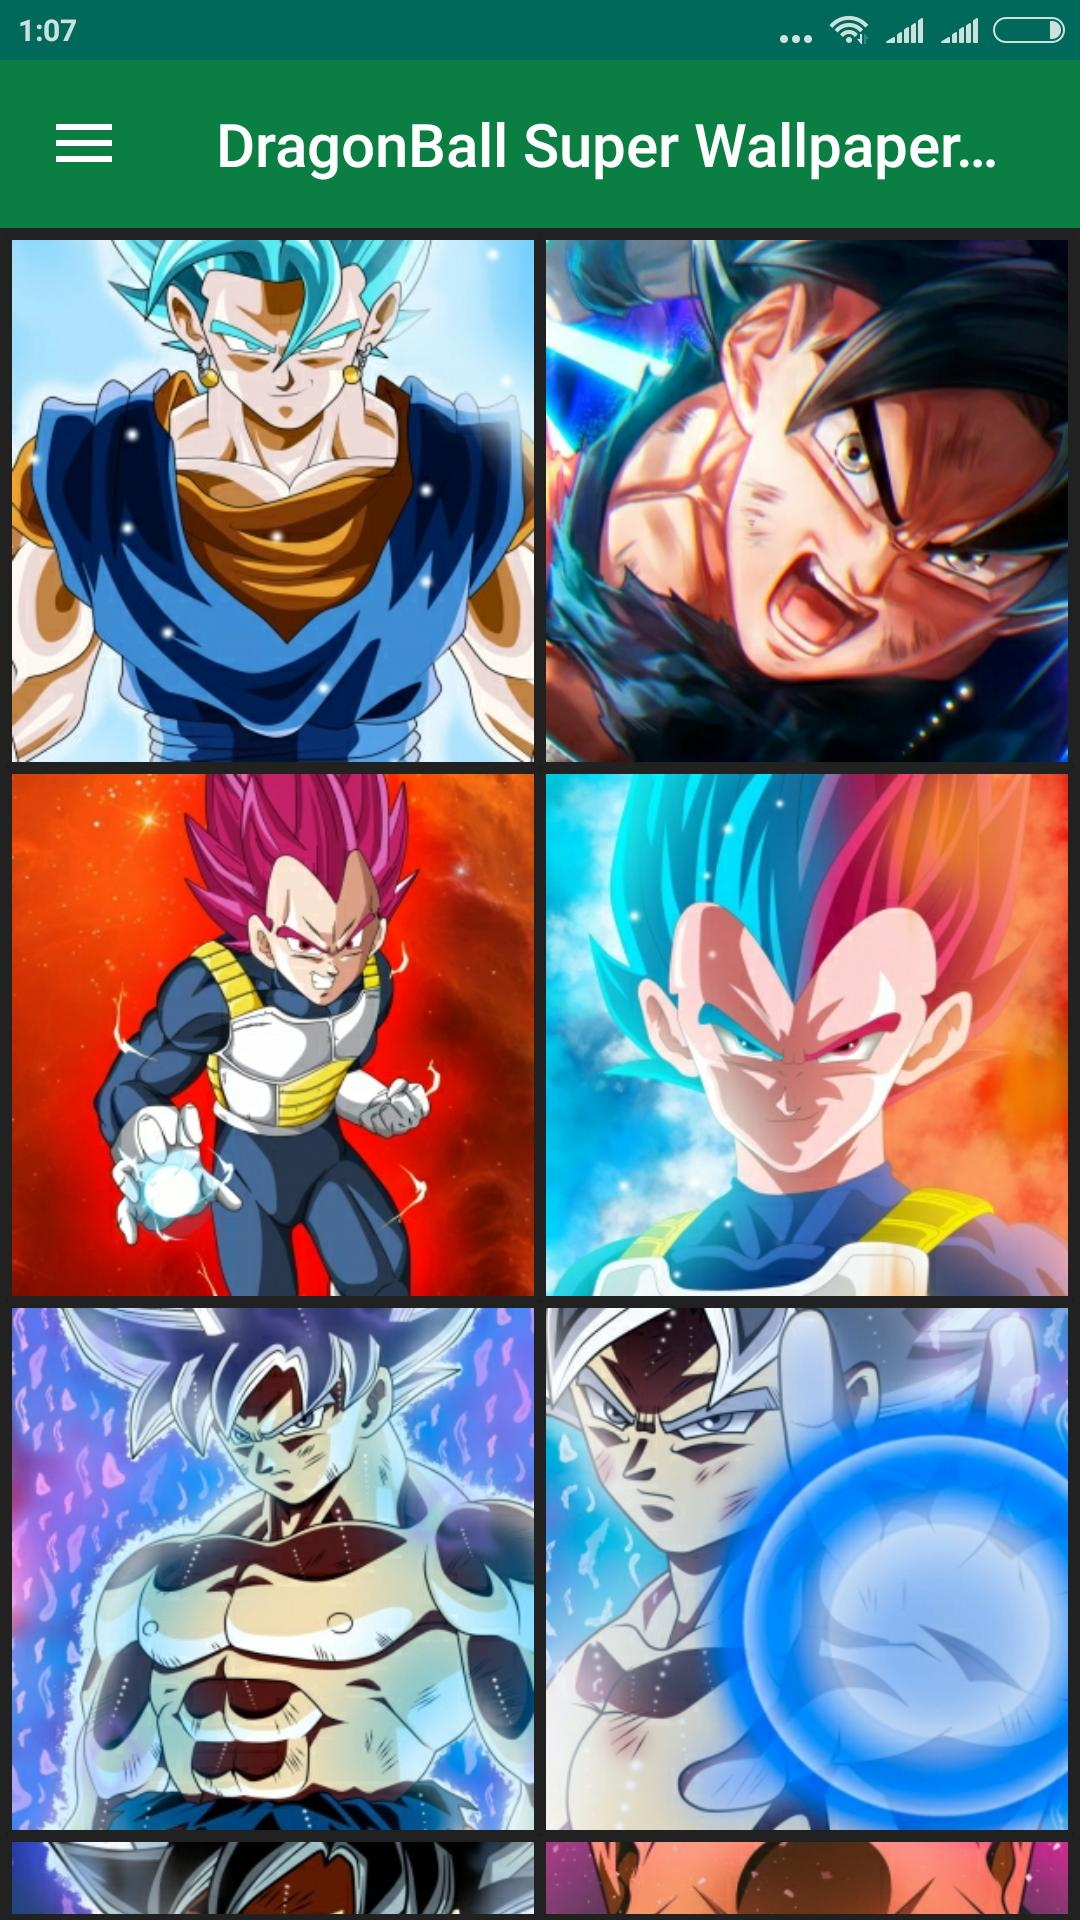 Dragon Ball Super 2018 Wallpaper Hd For Android Apk Download